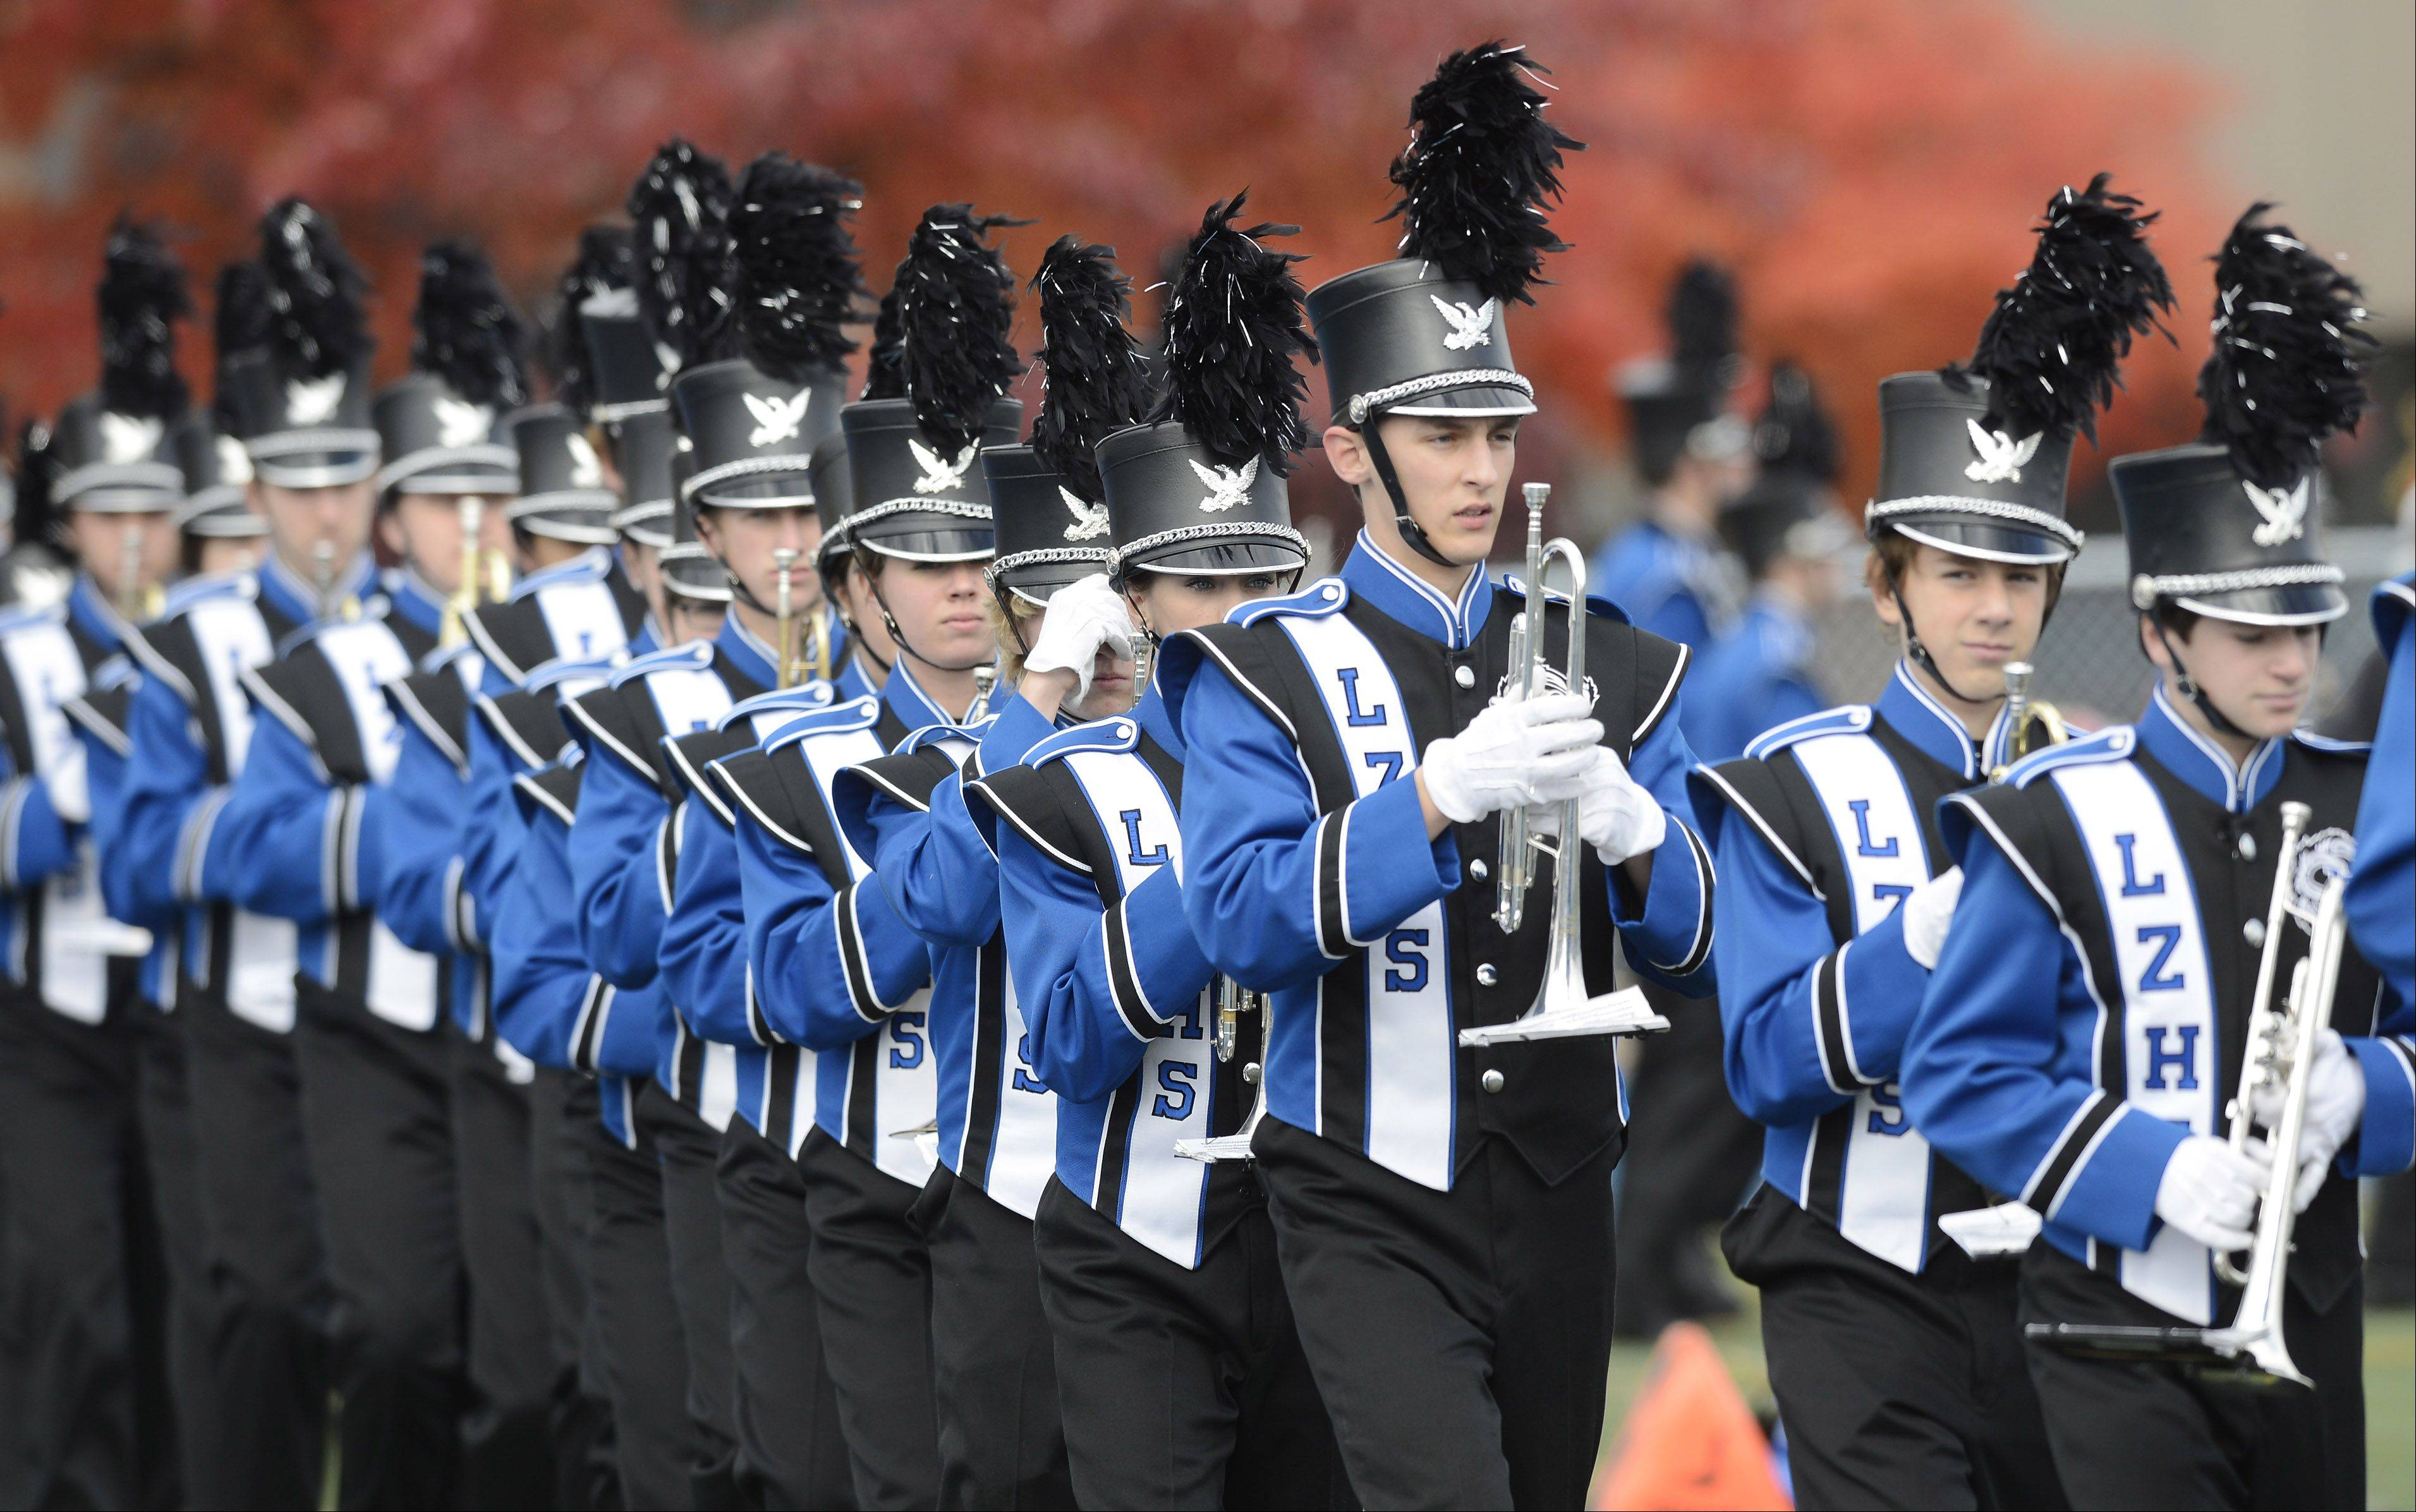 The Lake Zurich High School band, which normally doesn't march in parades, will take part in two major marches -- one in Chicago and another in Spain.